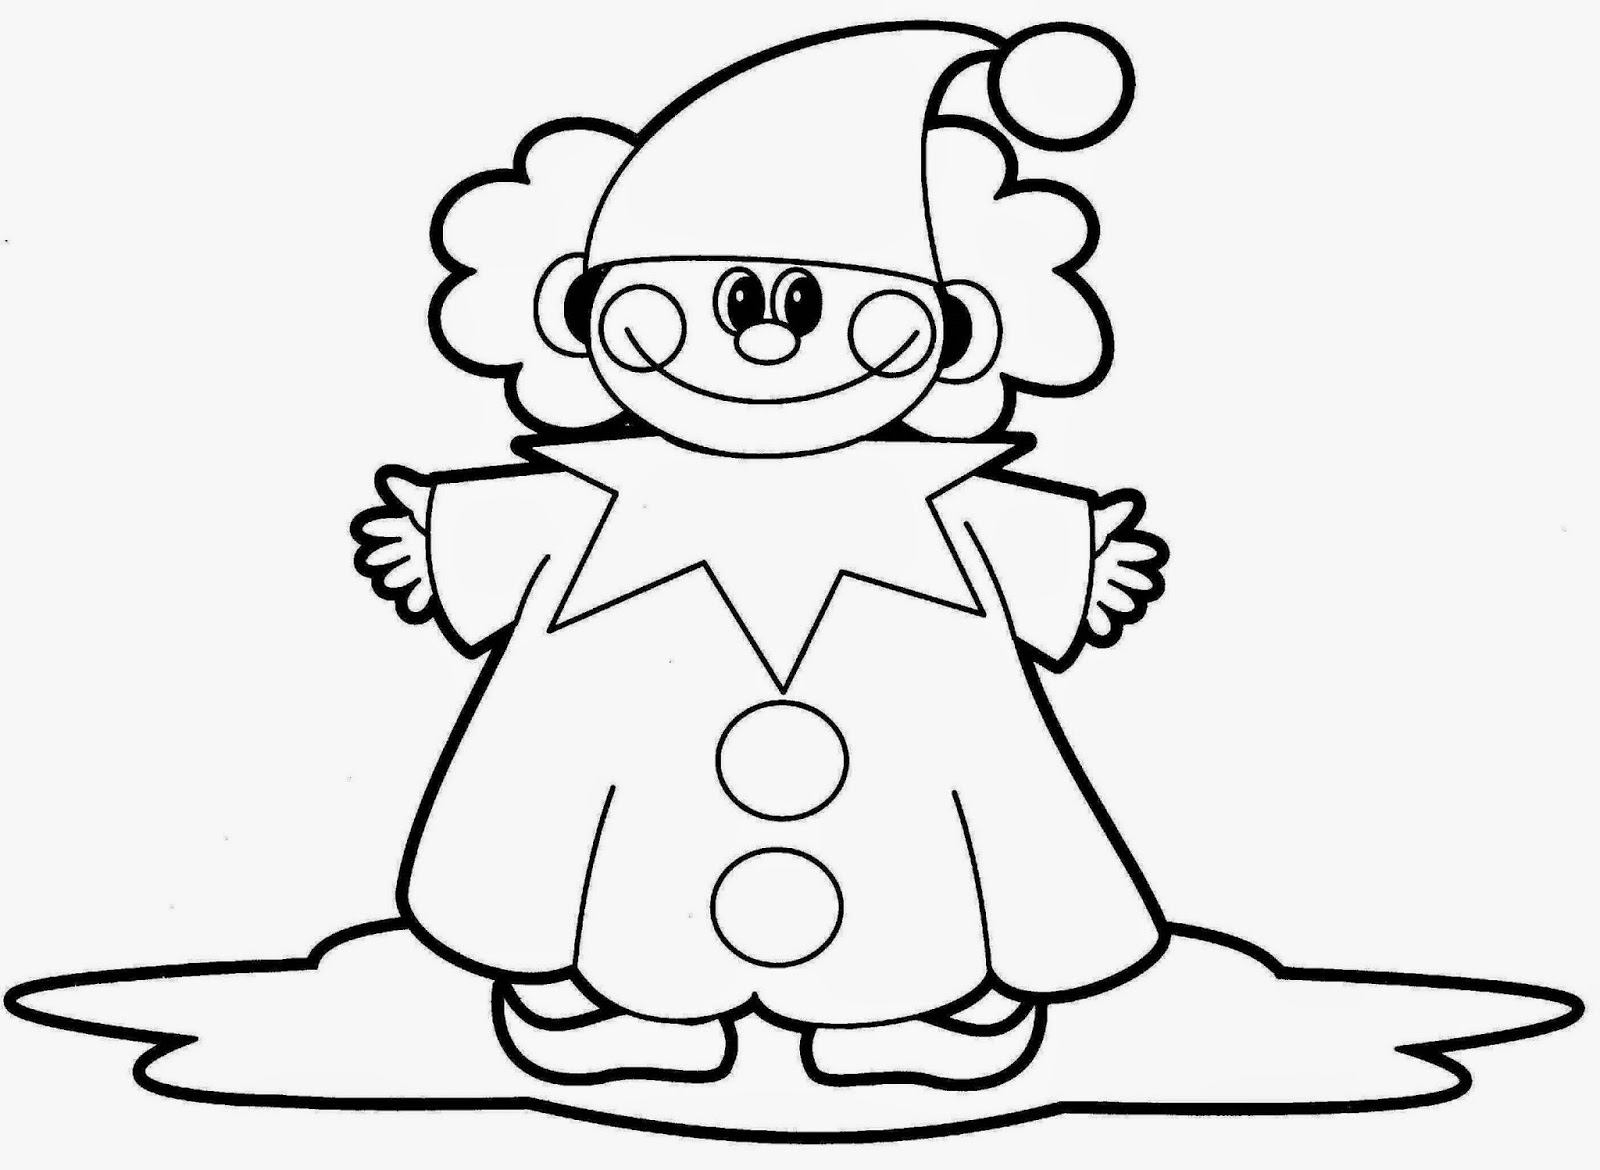 Childrens coloring sheet of a rag doll - Image Sketches Galleries And Download More Sketch Sketch Coloring Page Rag Doll